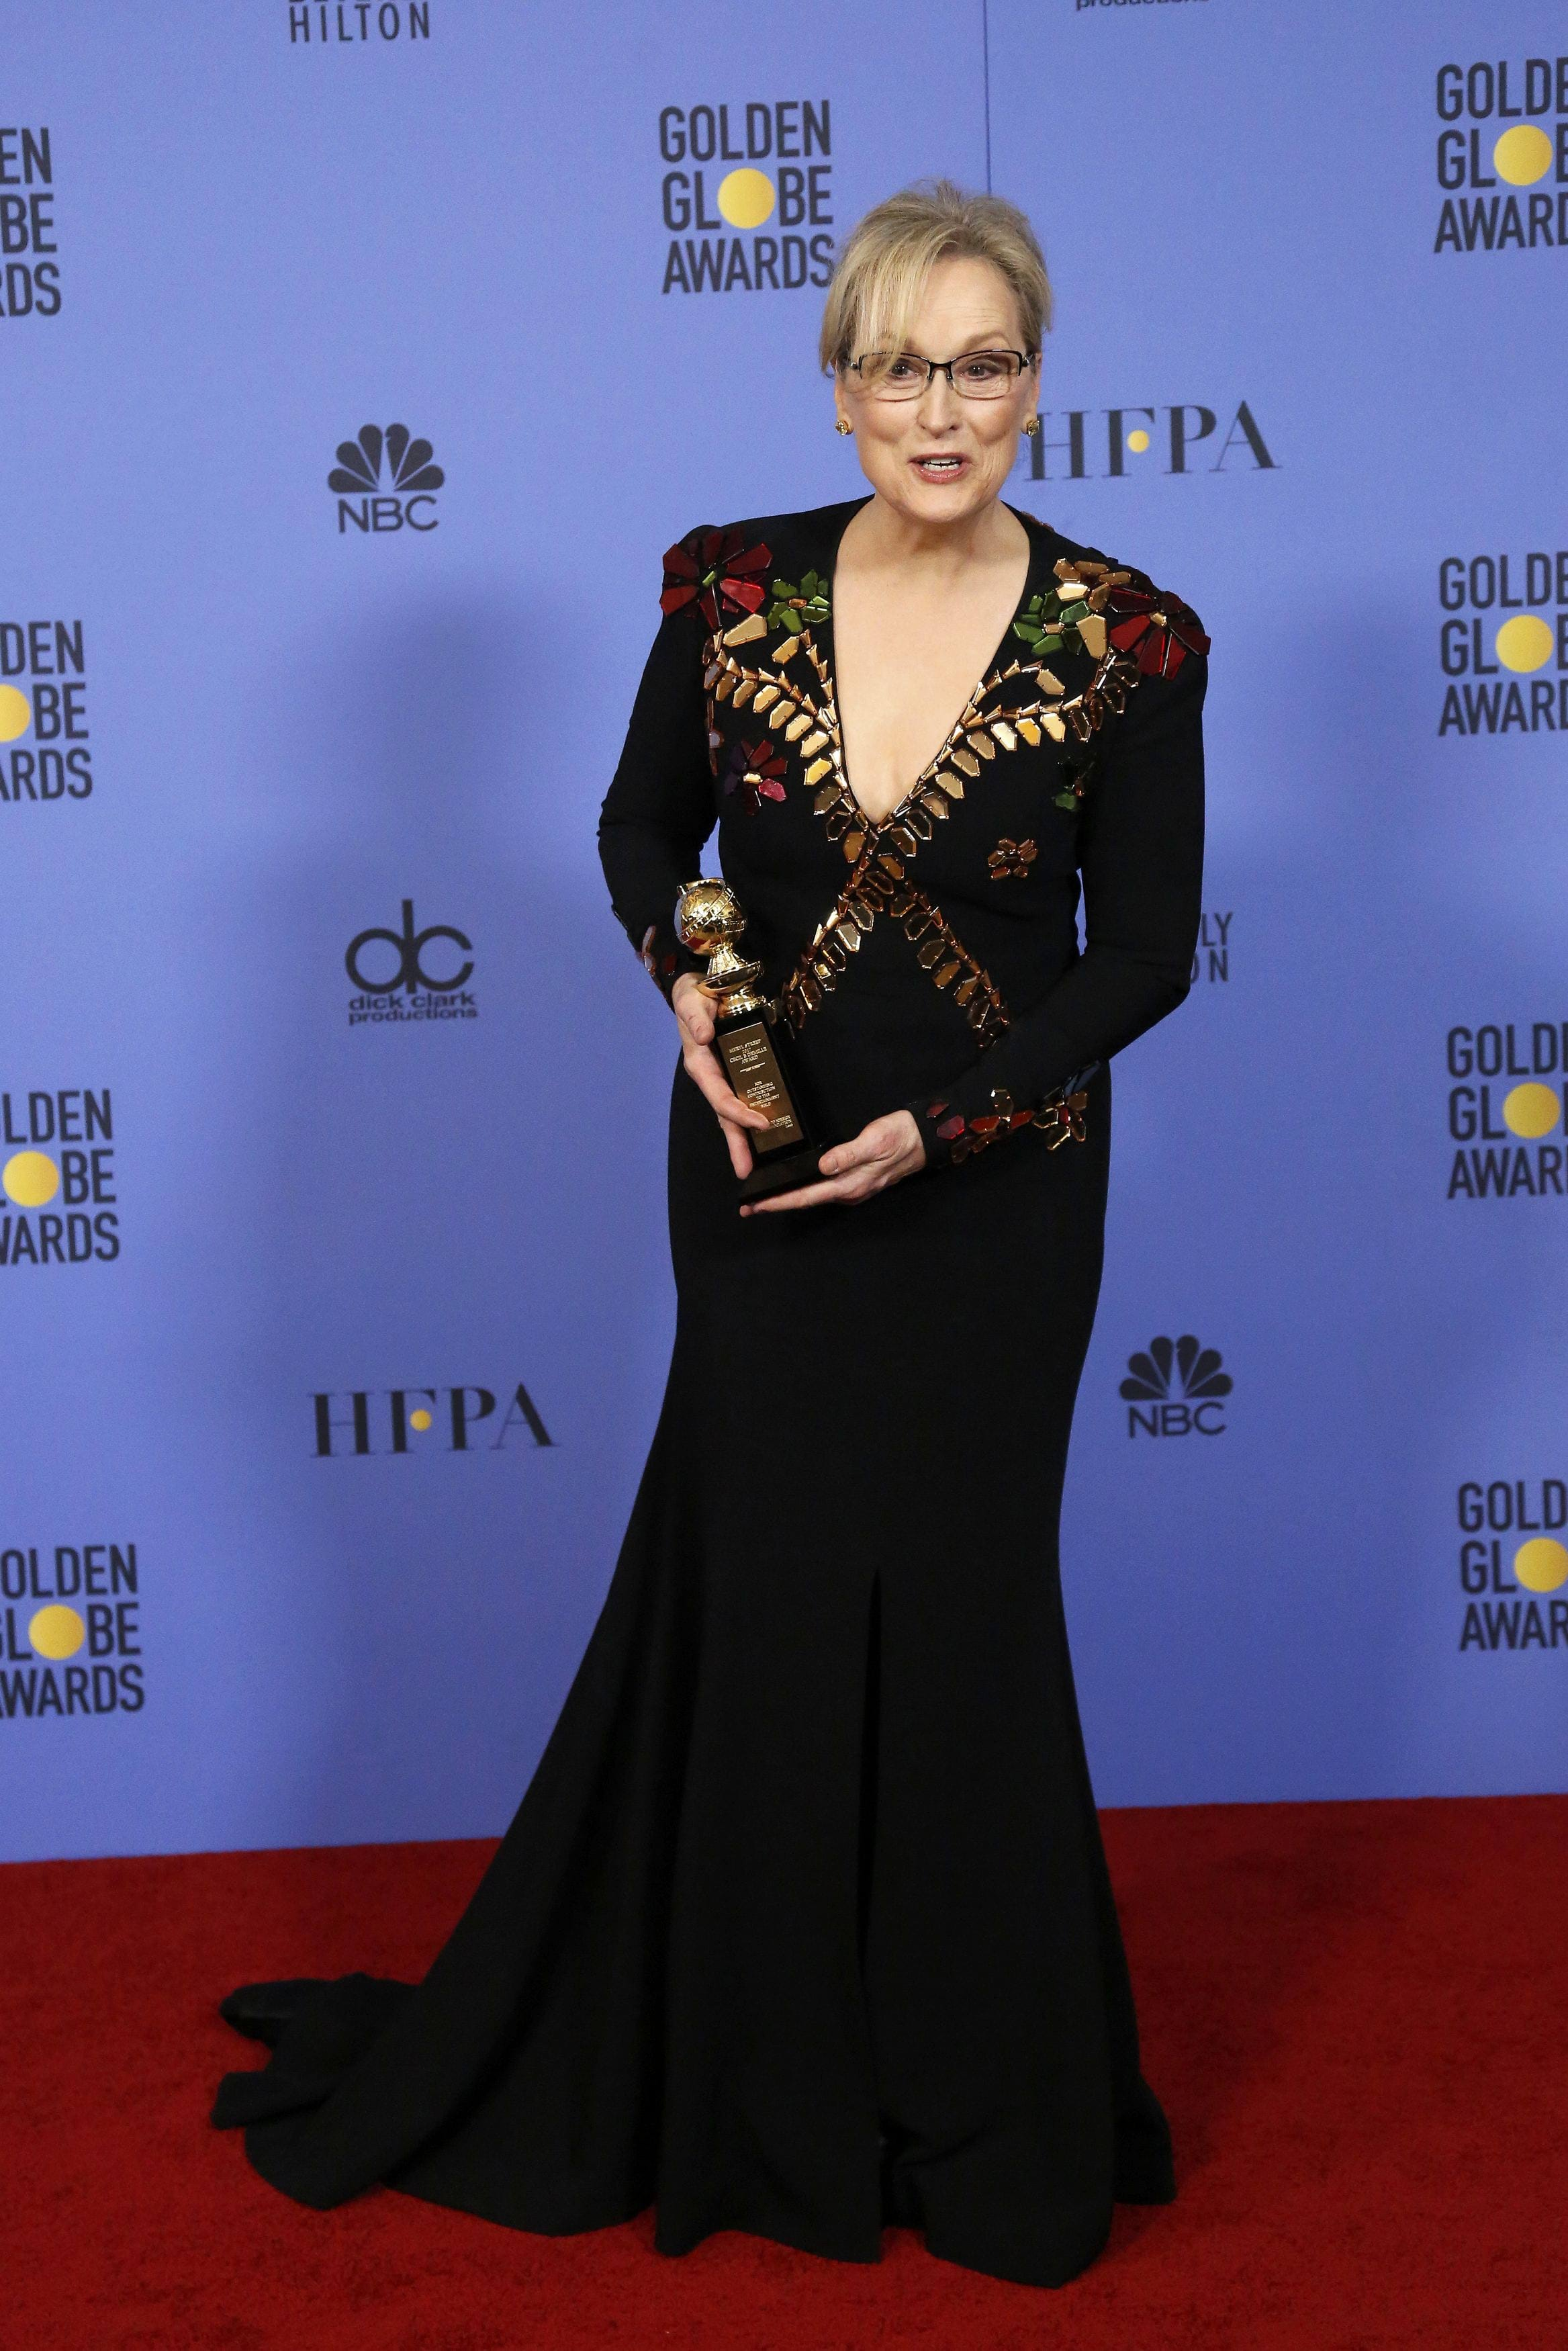 Meryl Streep holds the Cecil B. DeMille Award during the 74th Annual Golden Globe Awards in Beverly Hills, California, U.S., January 8, 2017. REUTERS/Mario Anzuoni